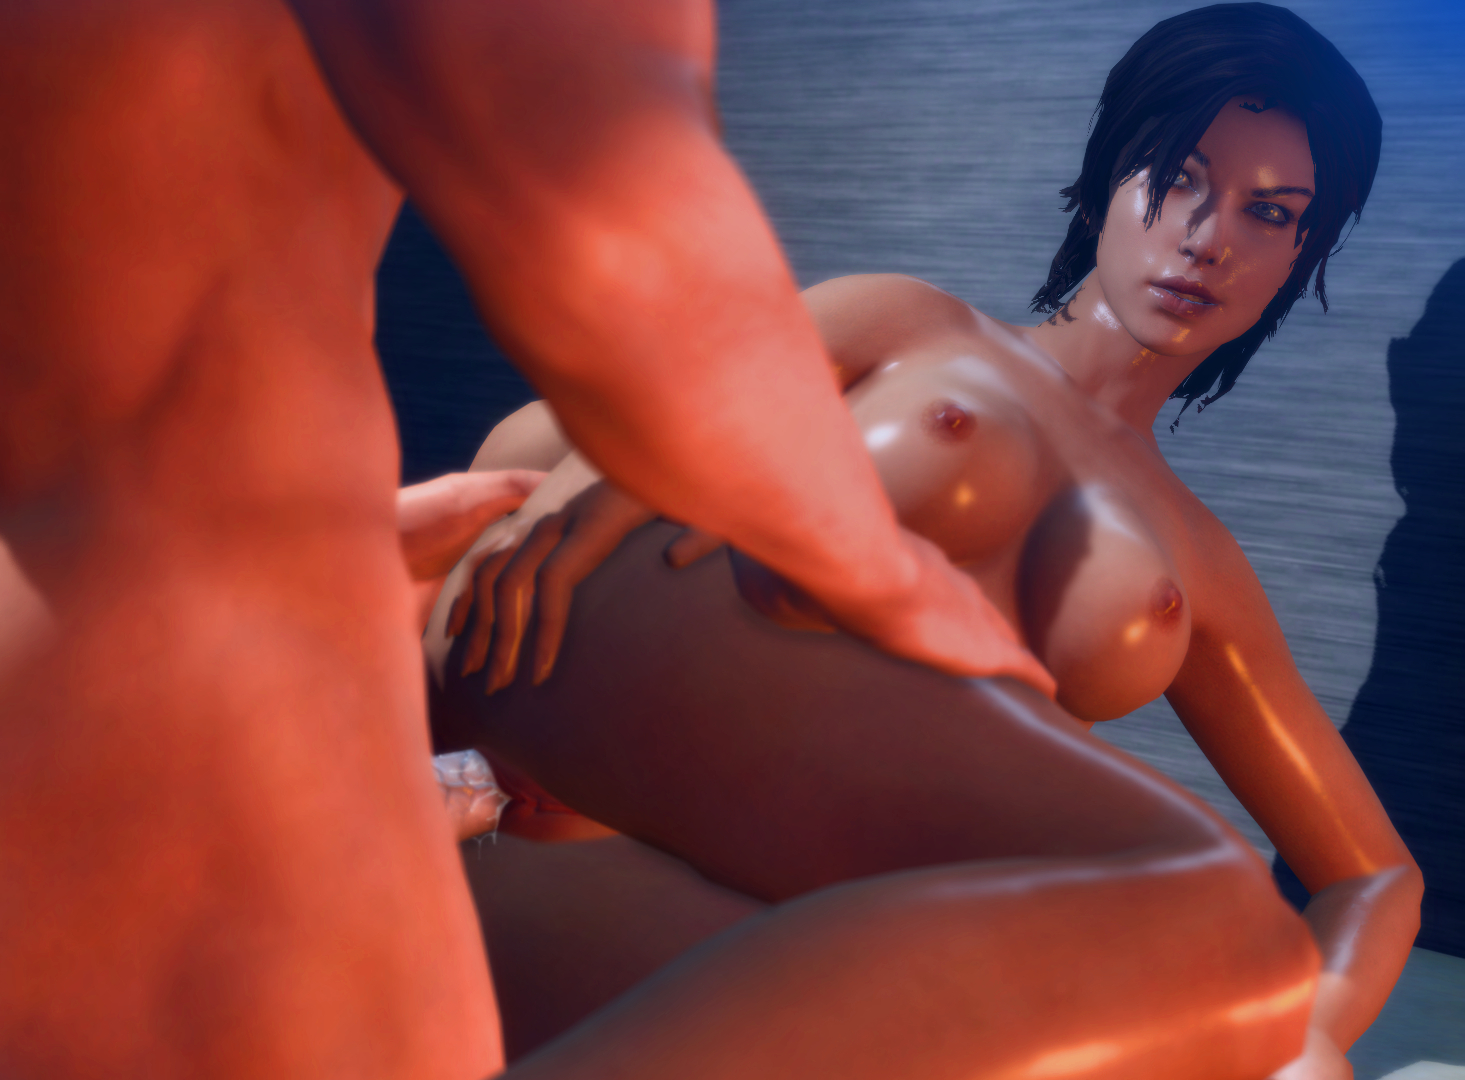 Tomb raider xxx 3d having sex adult pic